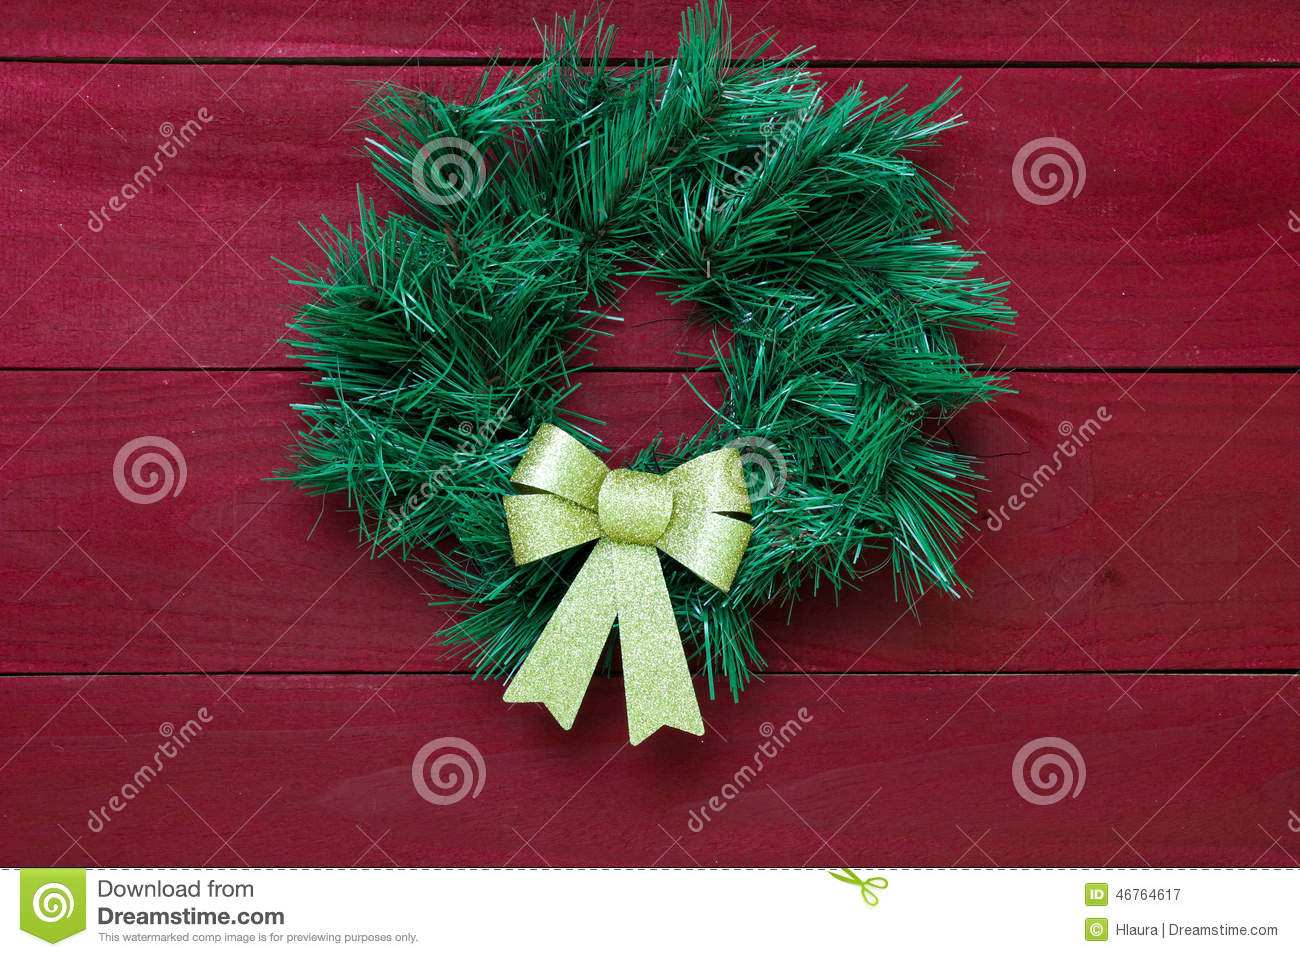 Green Christmas Bow Background Graphics: Green Christmas Wreath With Gold Bow Hanging On Antique